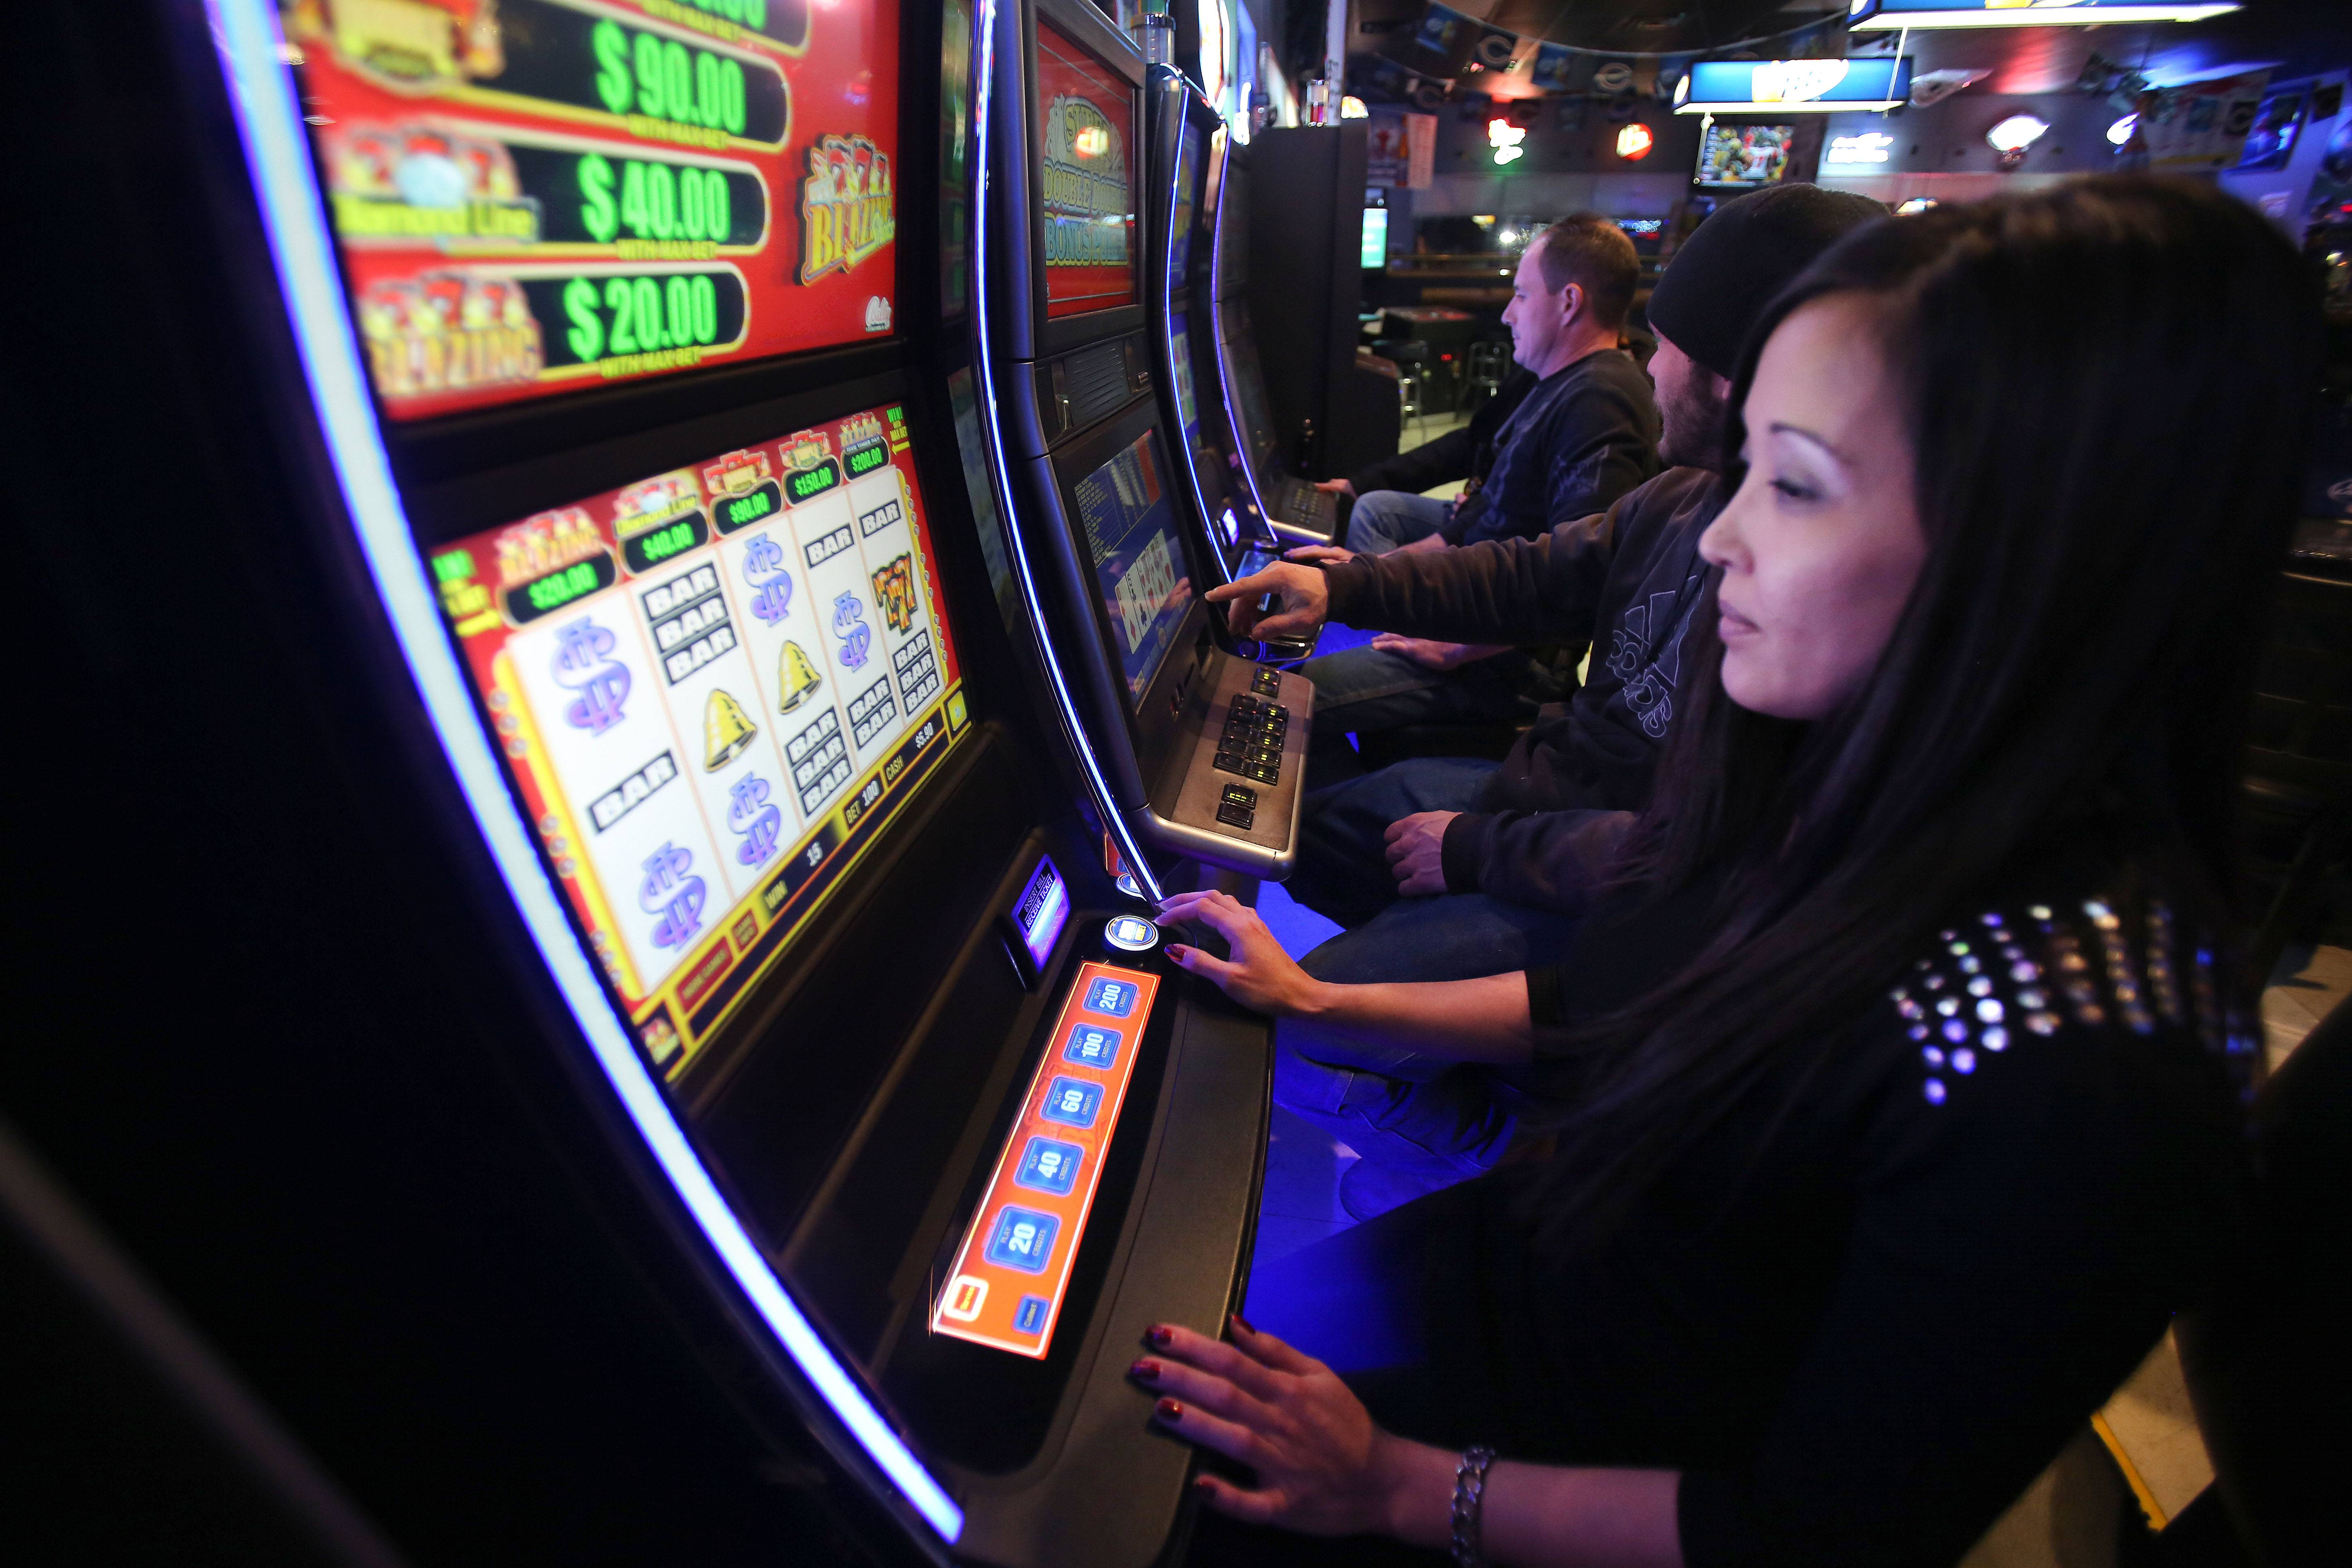 Island Lake bans new video gambling permits